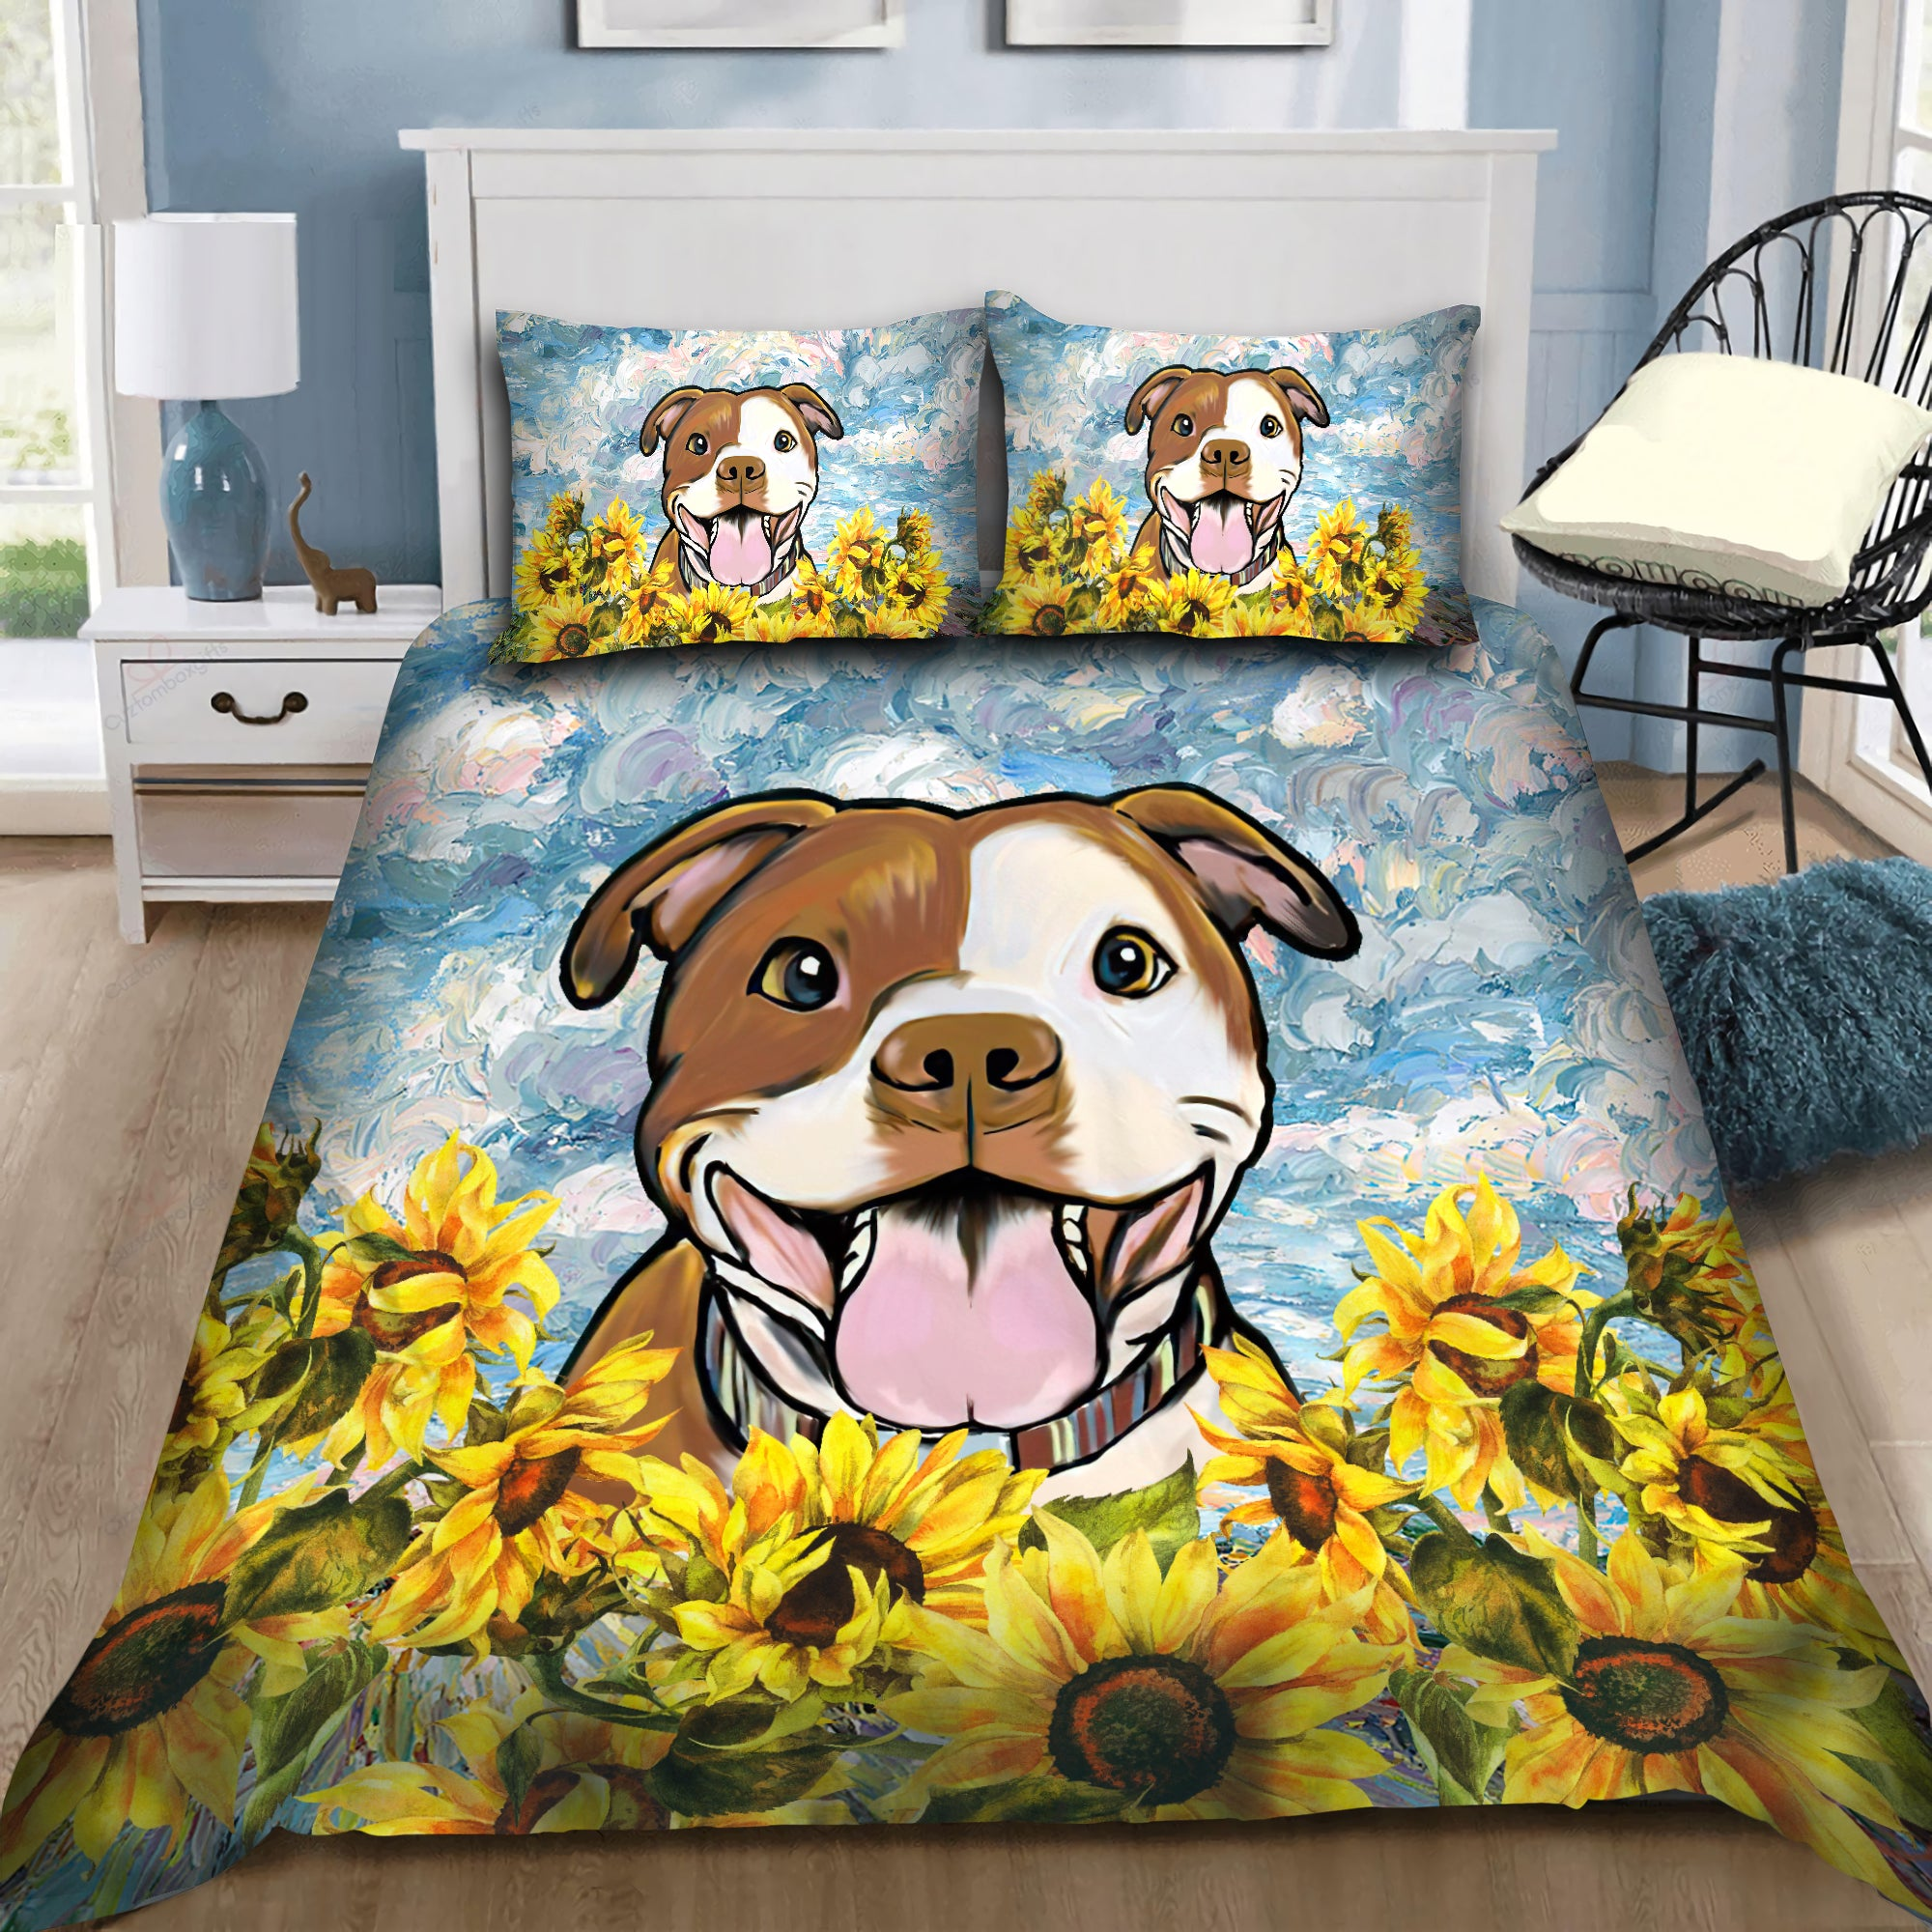 Staffordshire Terrier Sunflower Bedding 3D AM072068-LAM-BEDDING SETS-LAM-Twin-Vibe Cosy™